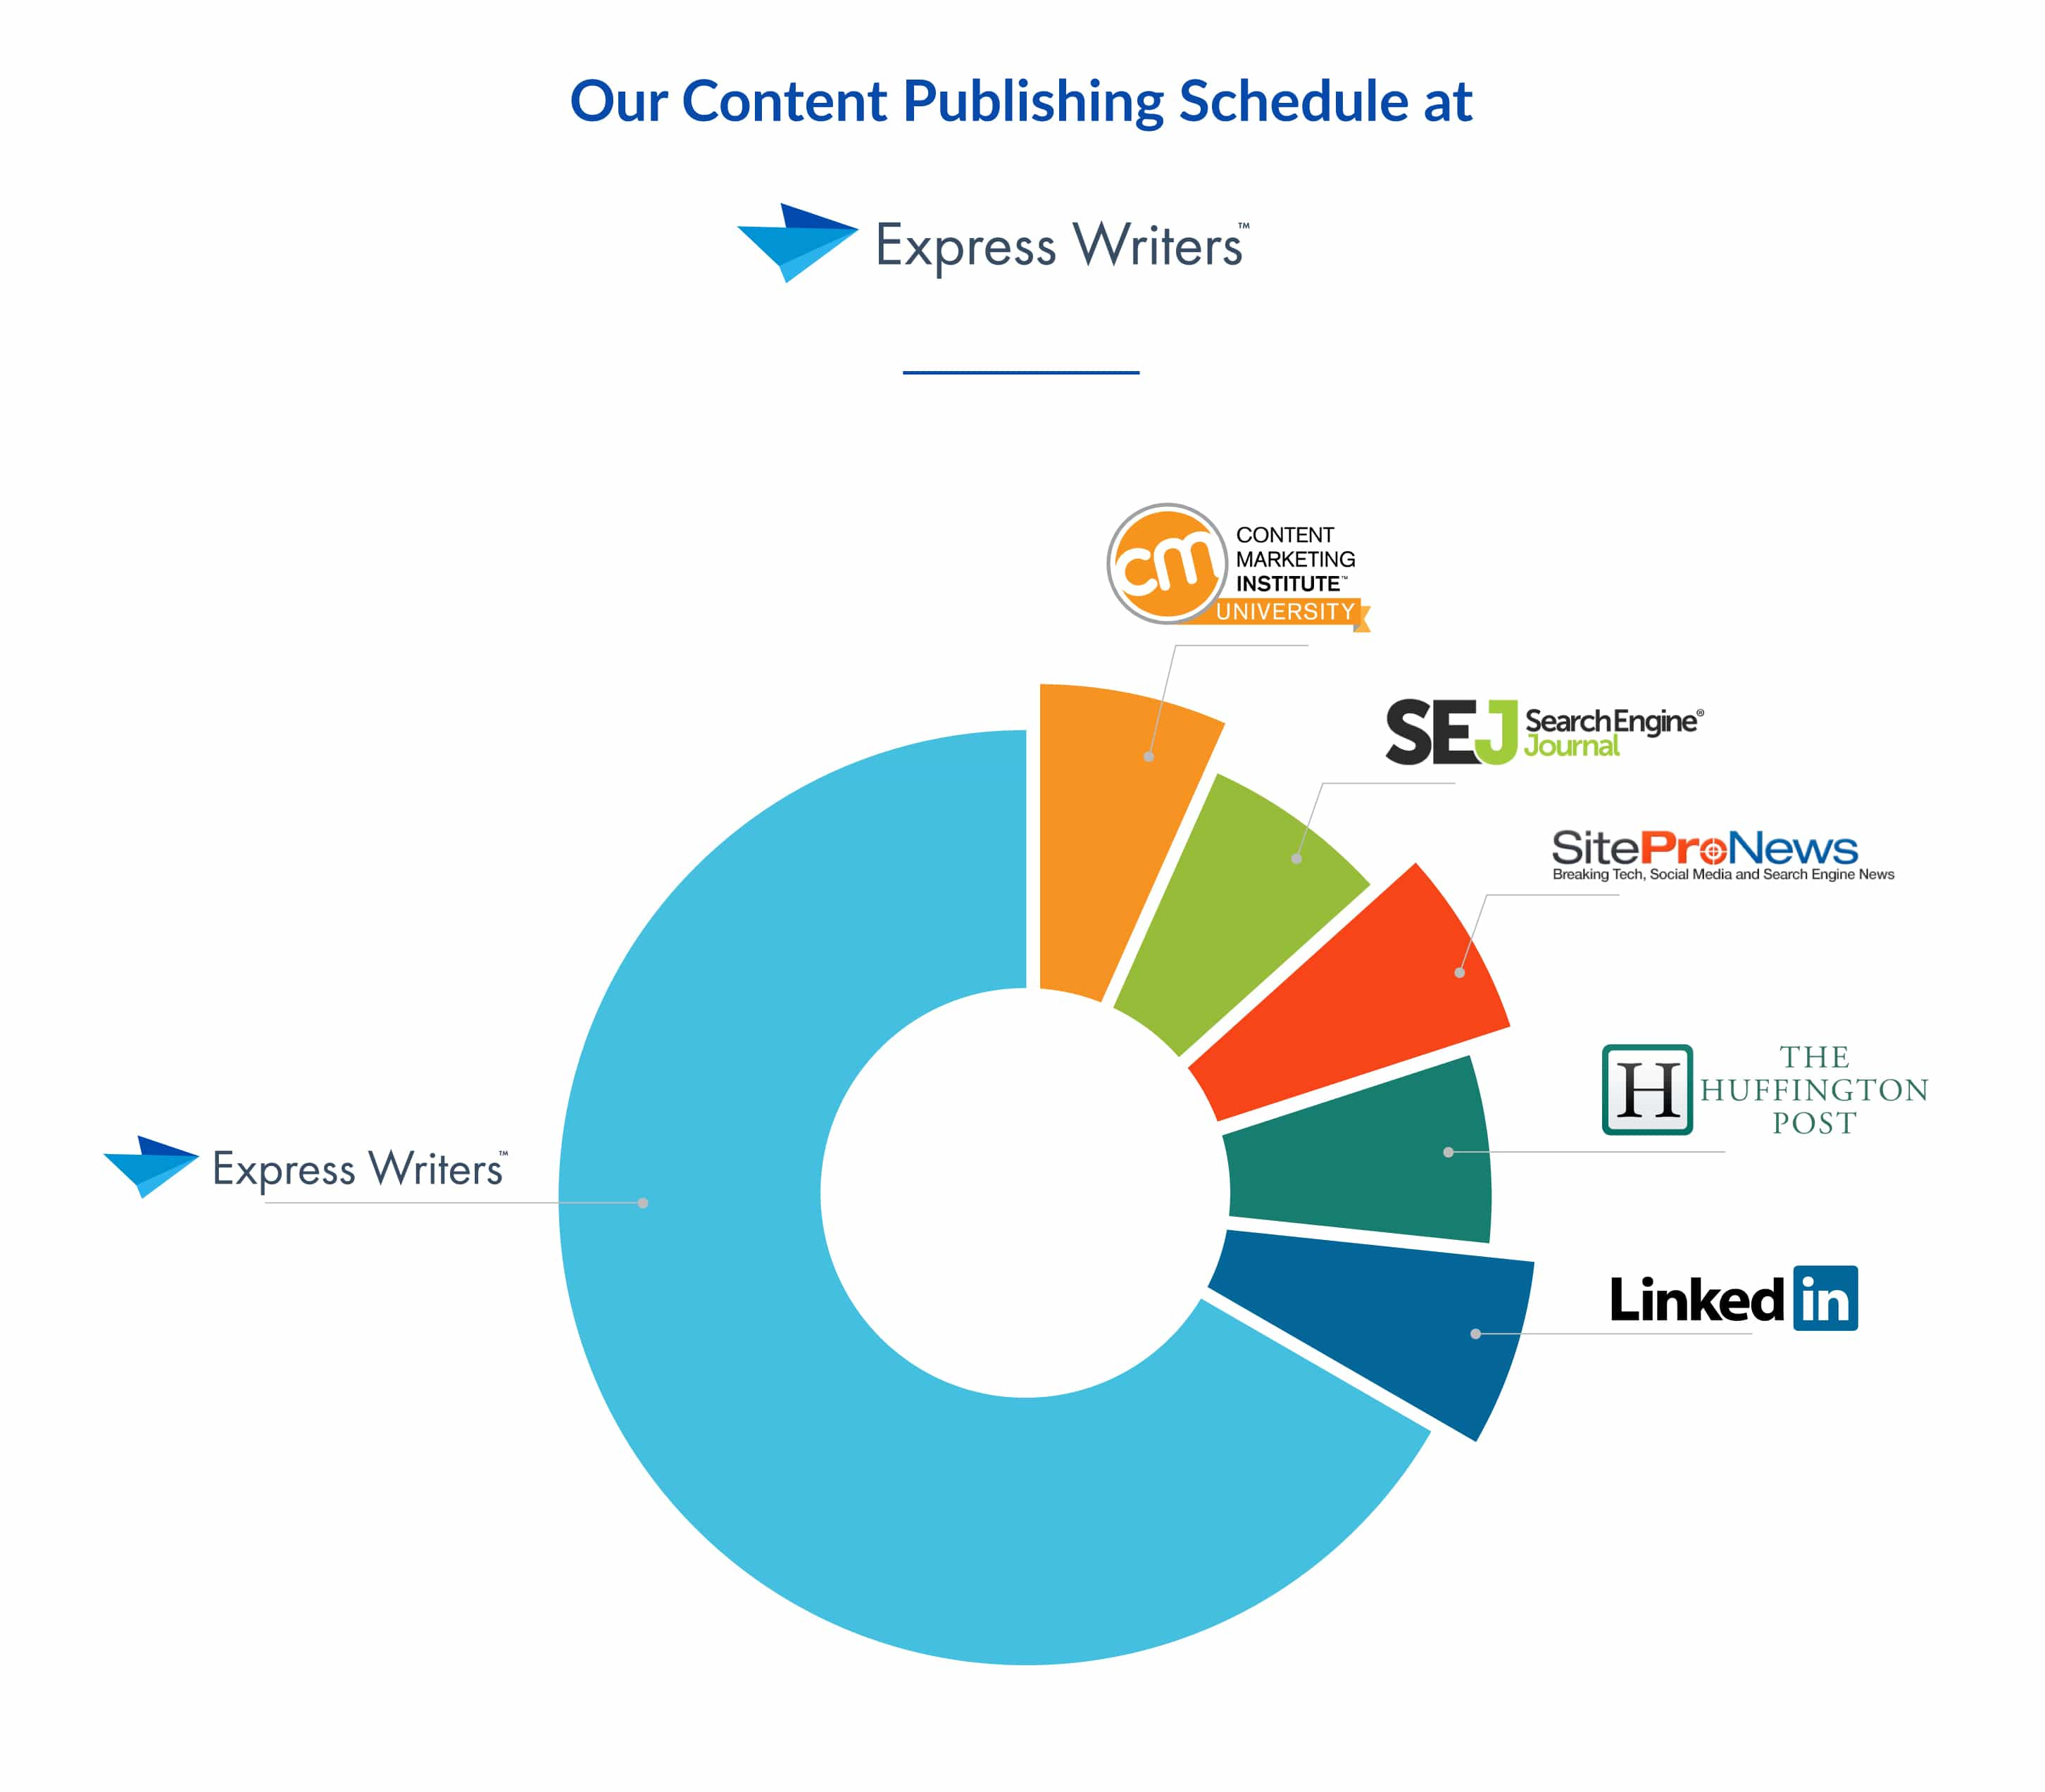 content publishing schedule at express writers